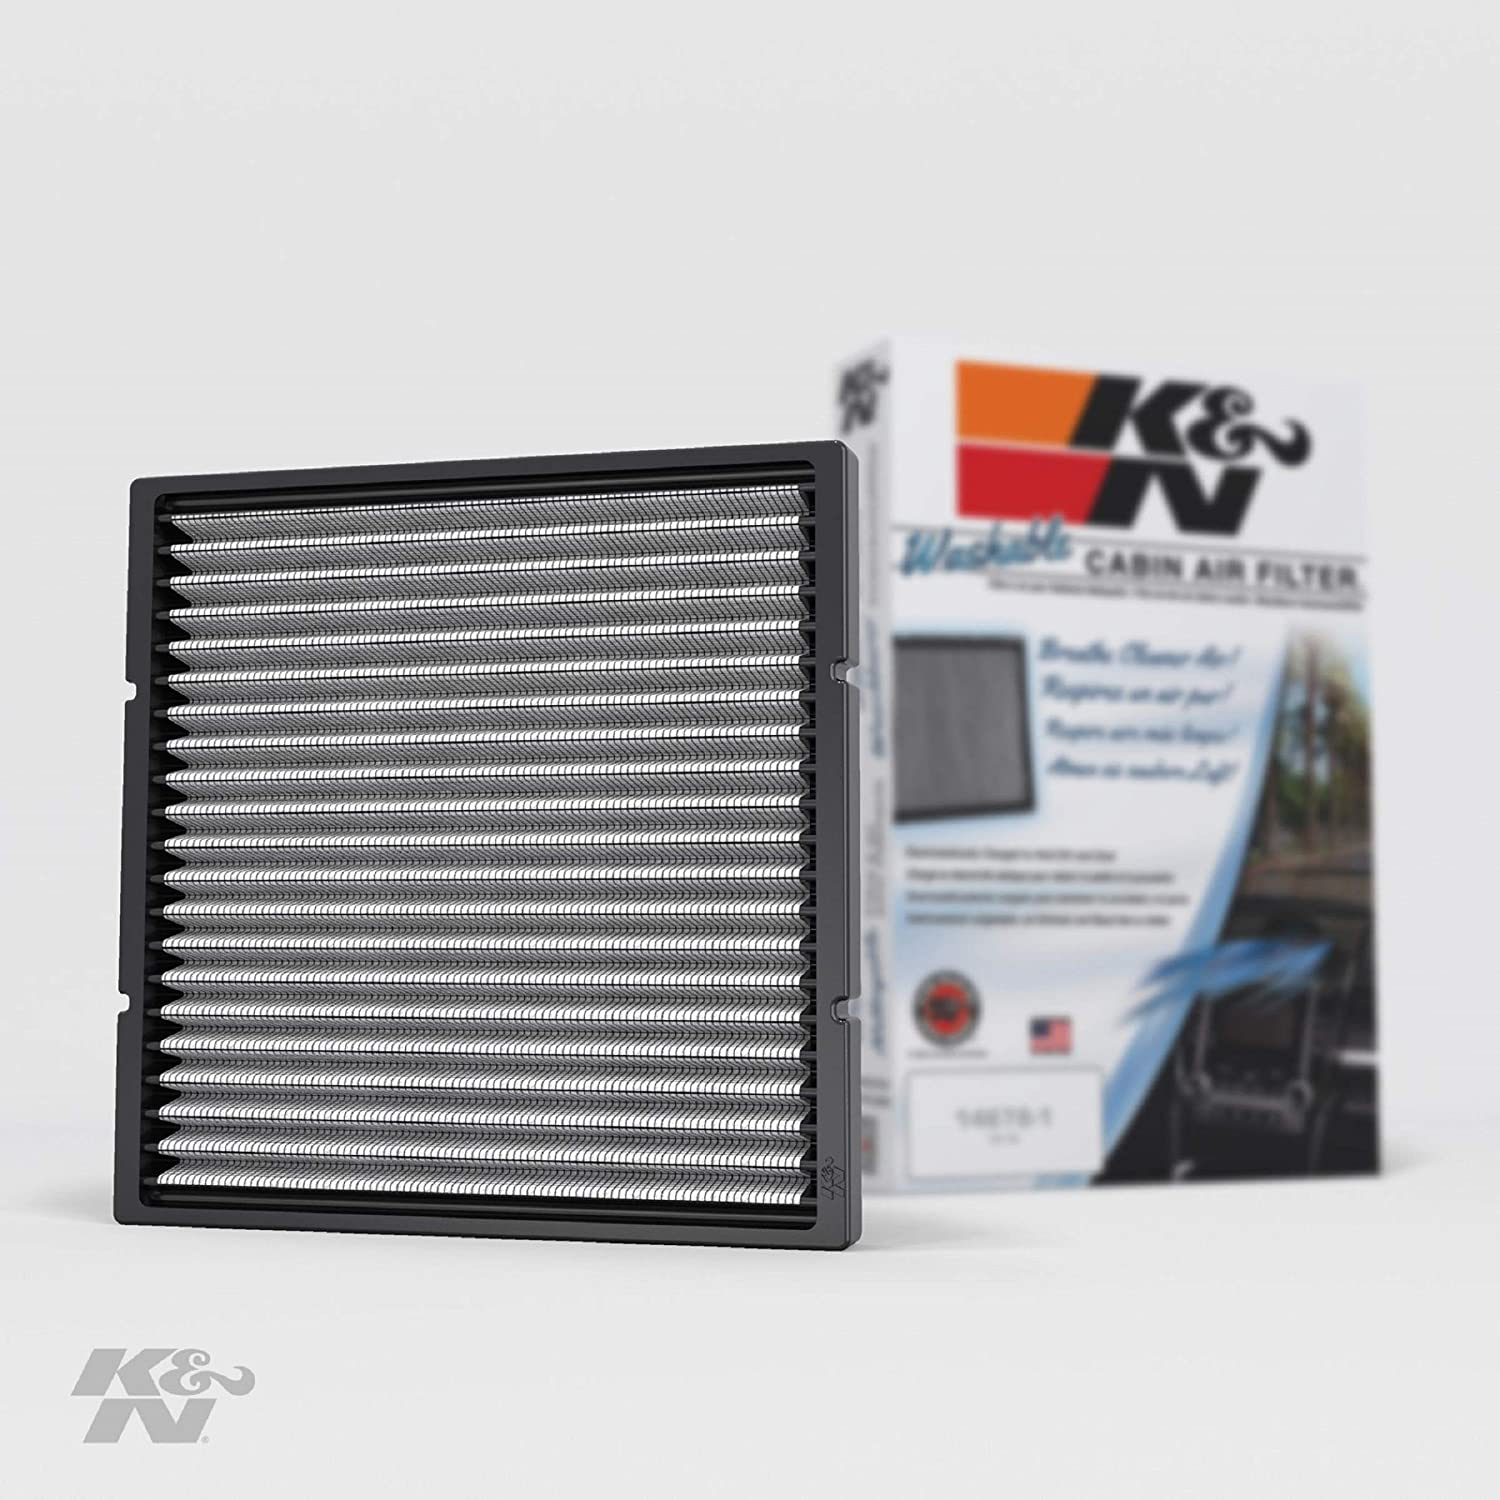 K&N Premium Cabin Air Filter: High Performance, Washable, Lasts for the Life of your Vehicle: Designed For Select 2000-2014 Toyota/Subaru/Mitsubishi/Lexus Vehicle Models, VF2002